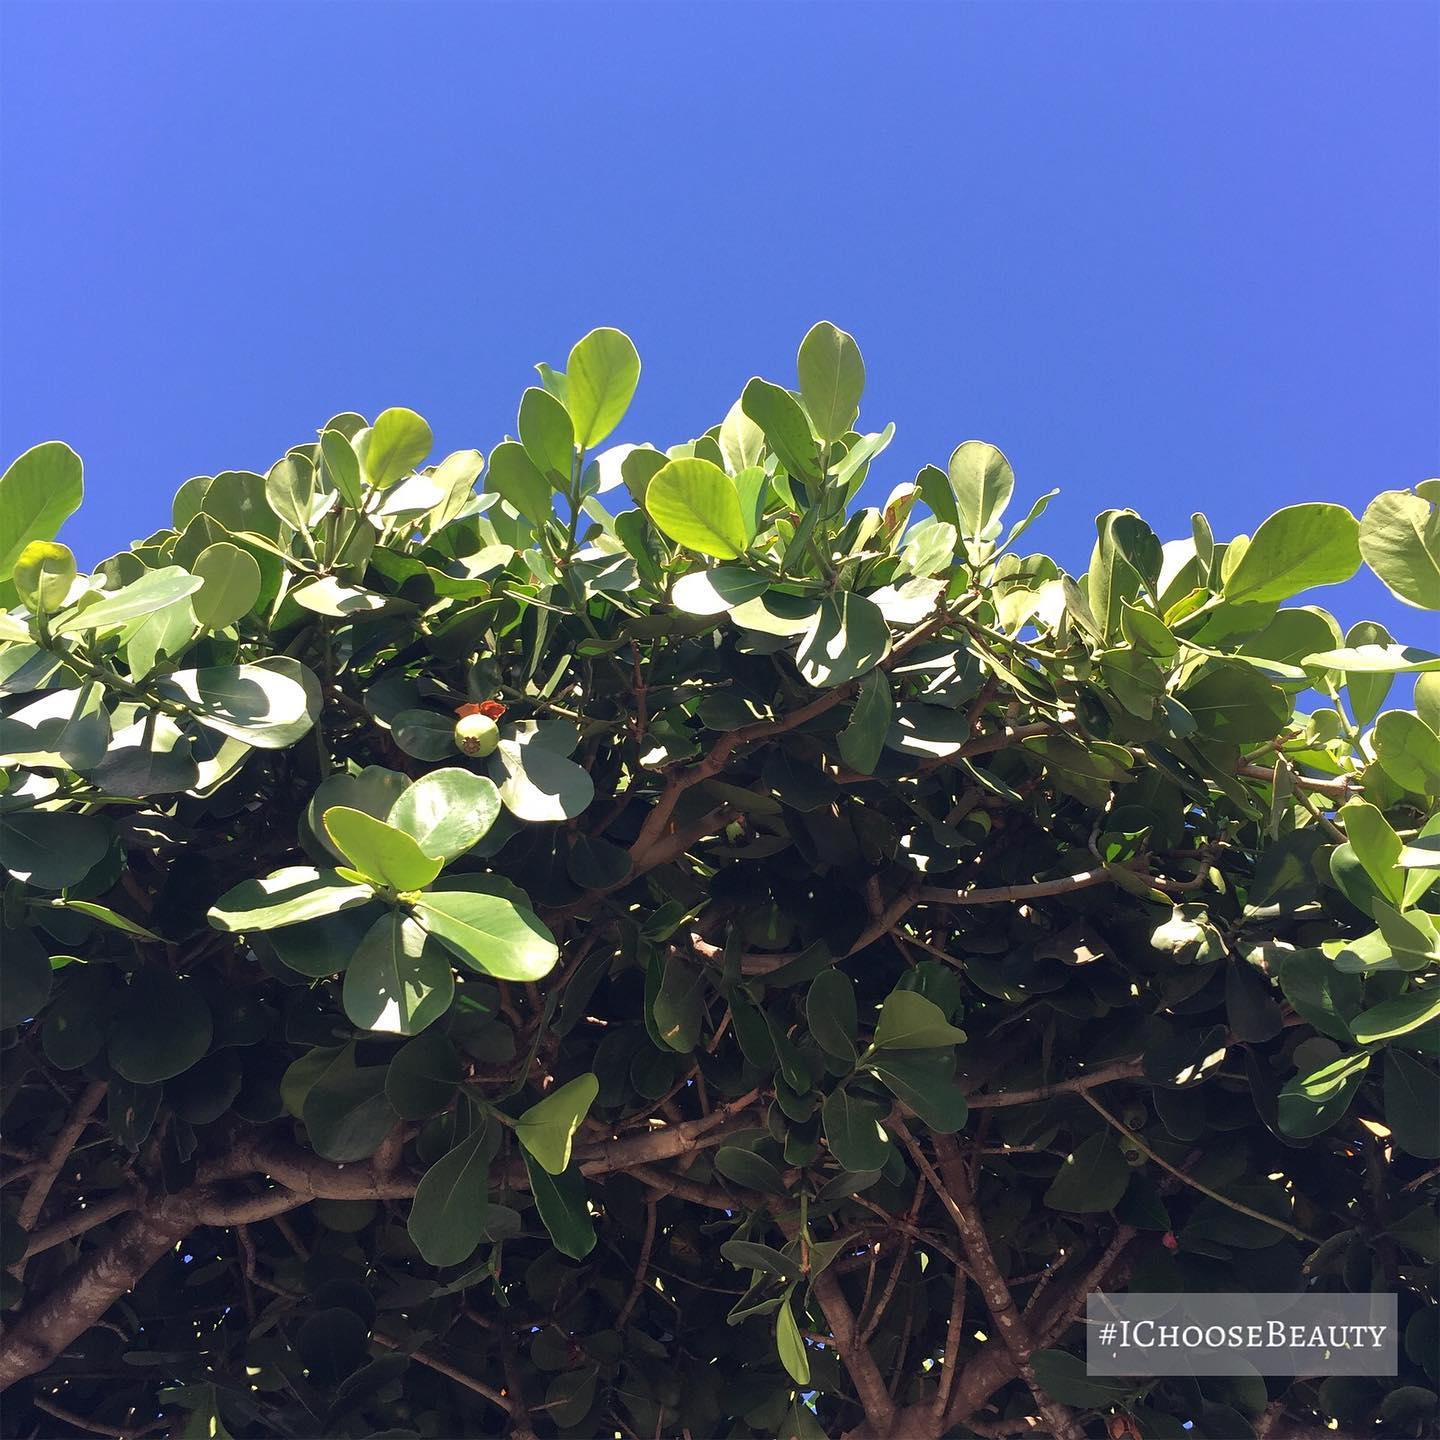 Gorgeous blue sky today. #ichoosebeauty Day 2568